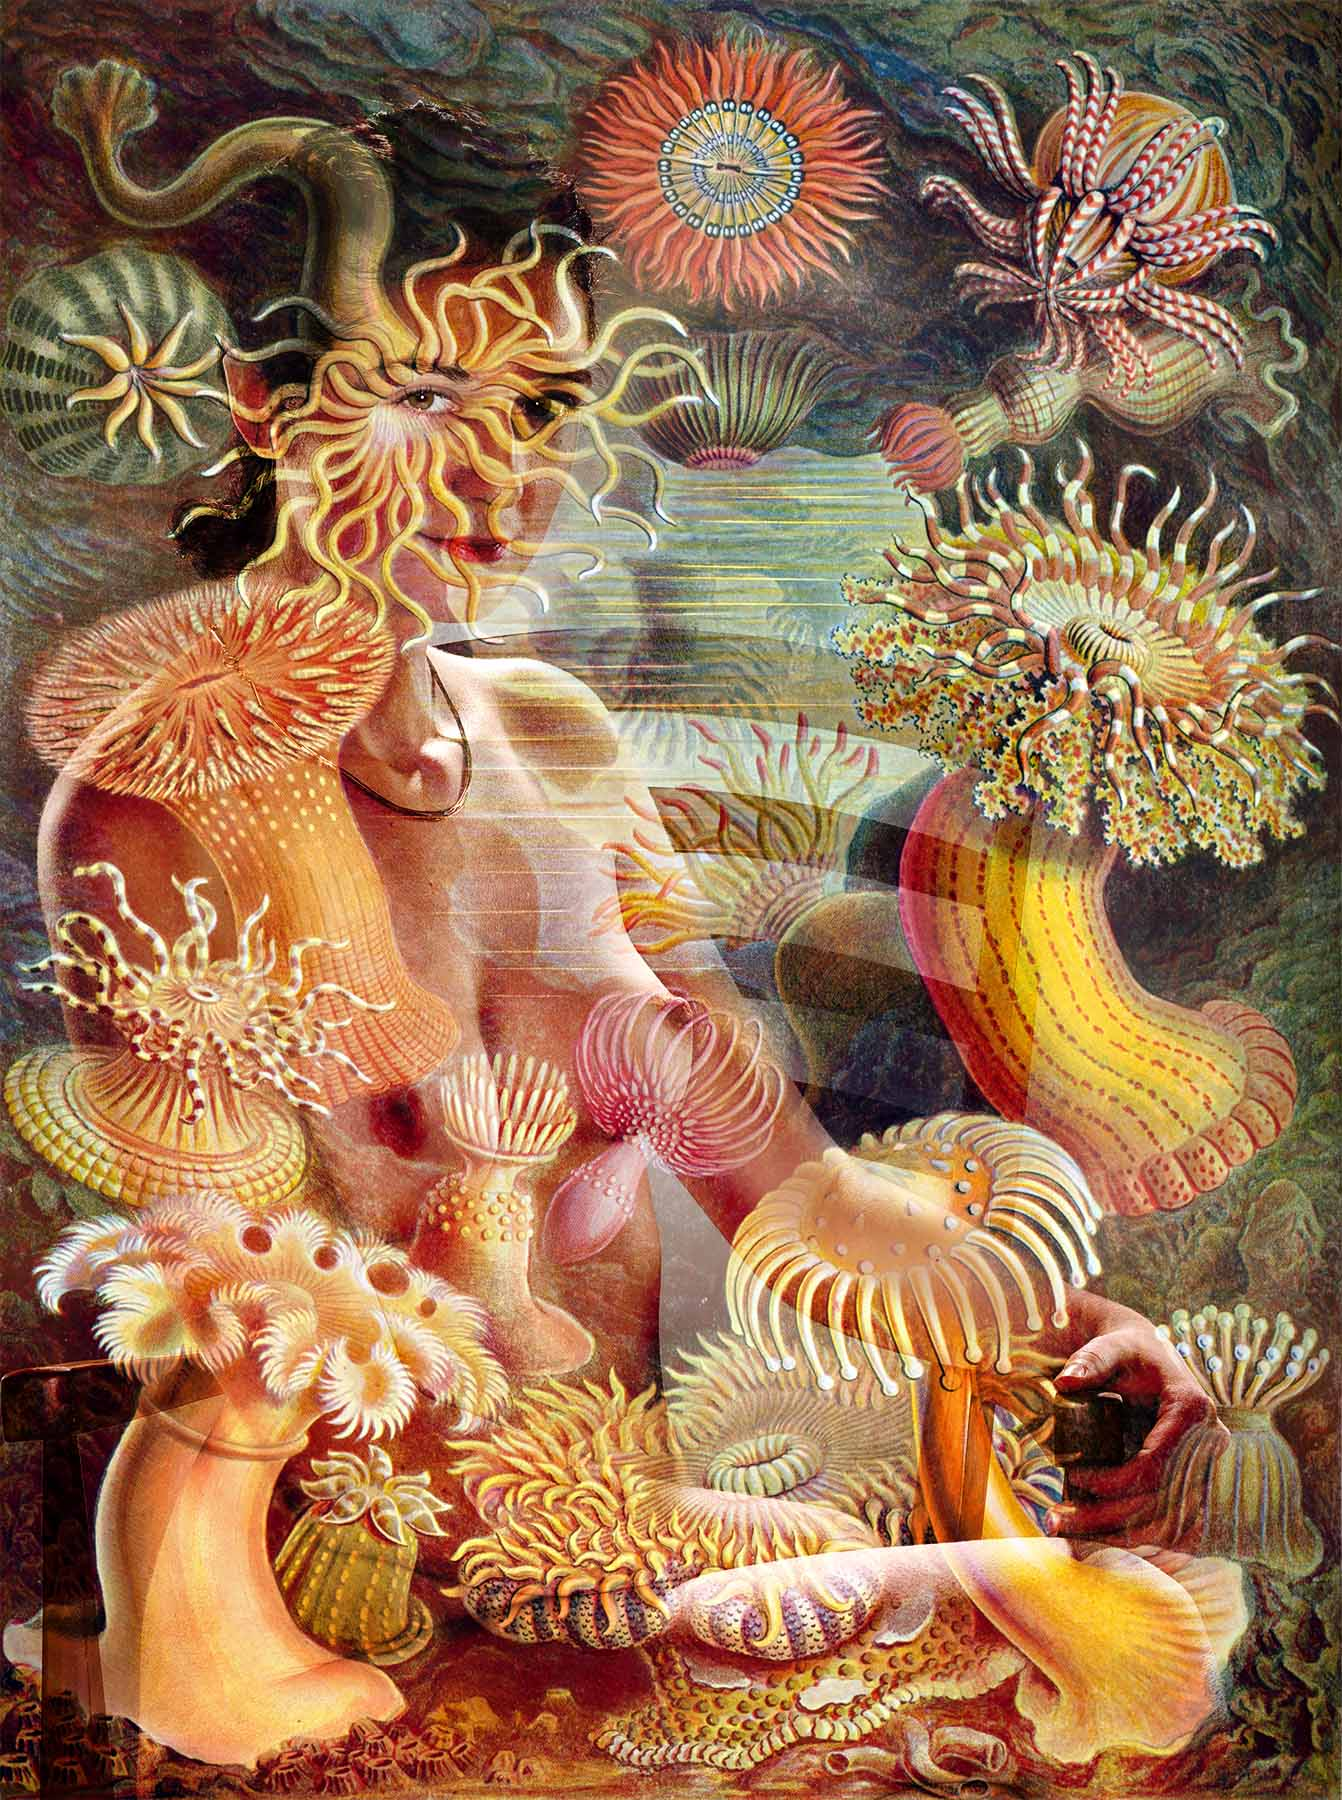 """Photo and collage   by Matt Clysdale.  Sea anemone illustration  from Ernst Haeckel's """"Kunstformen der Natur (Art Forms of Nature) of 1904"""